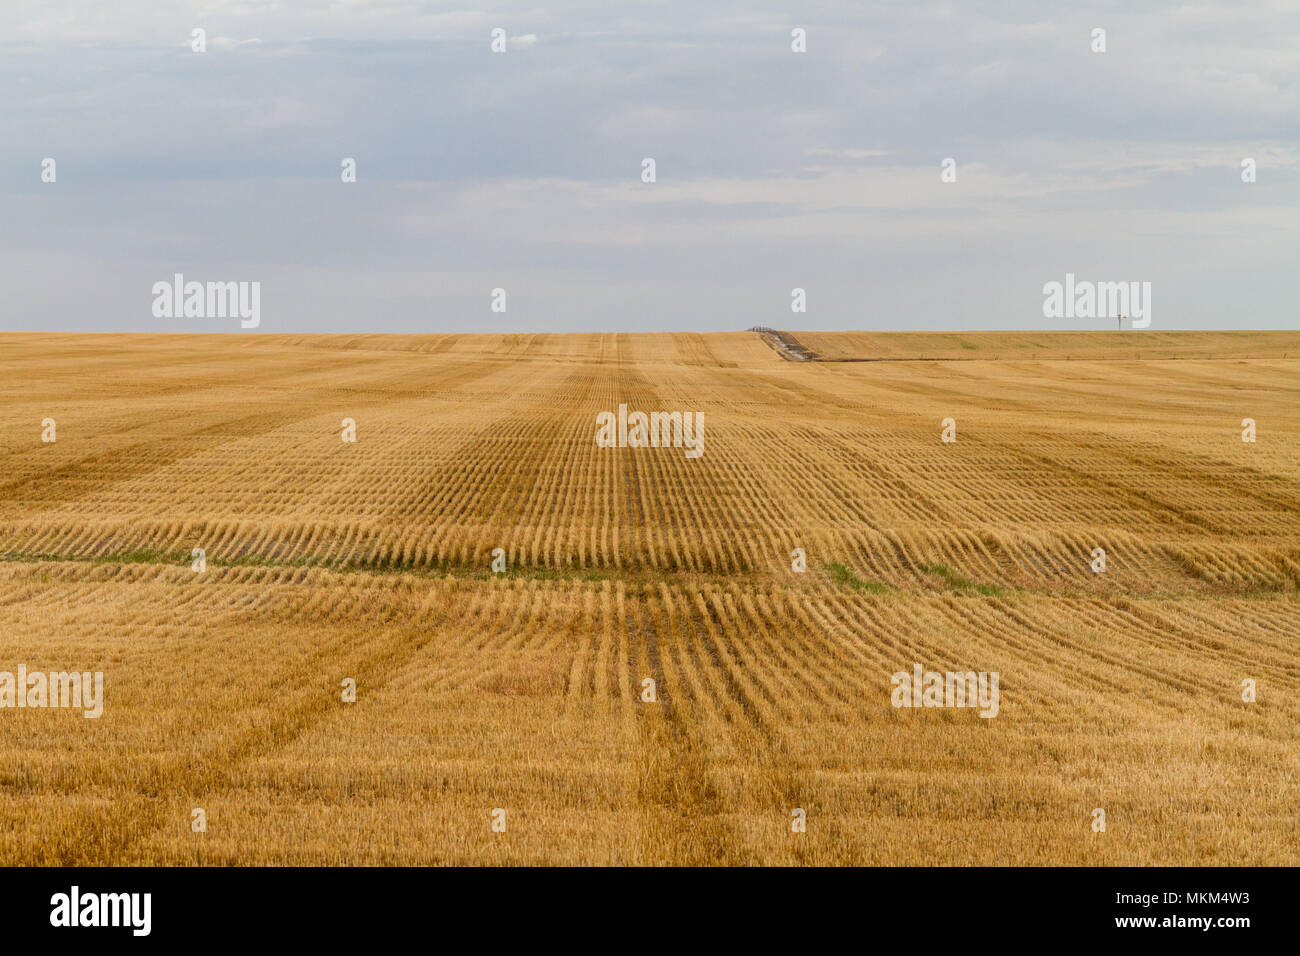 Rows and rows of wheat in paddock western australia Stock Photo